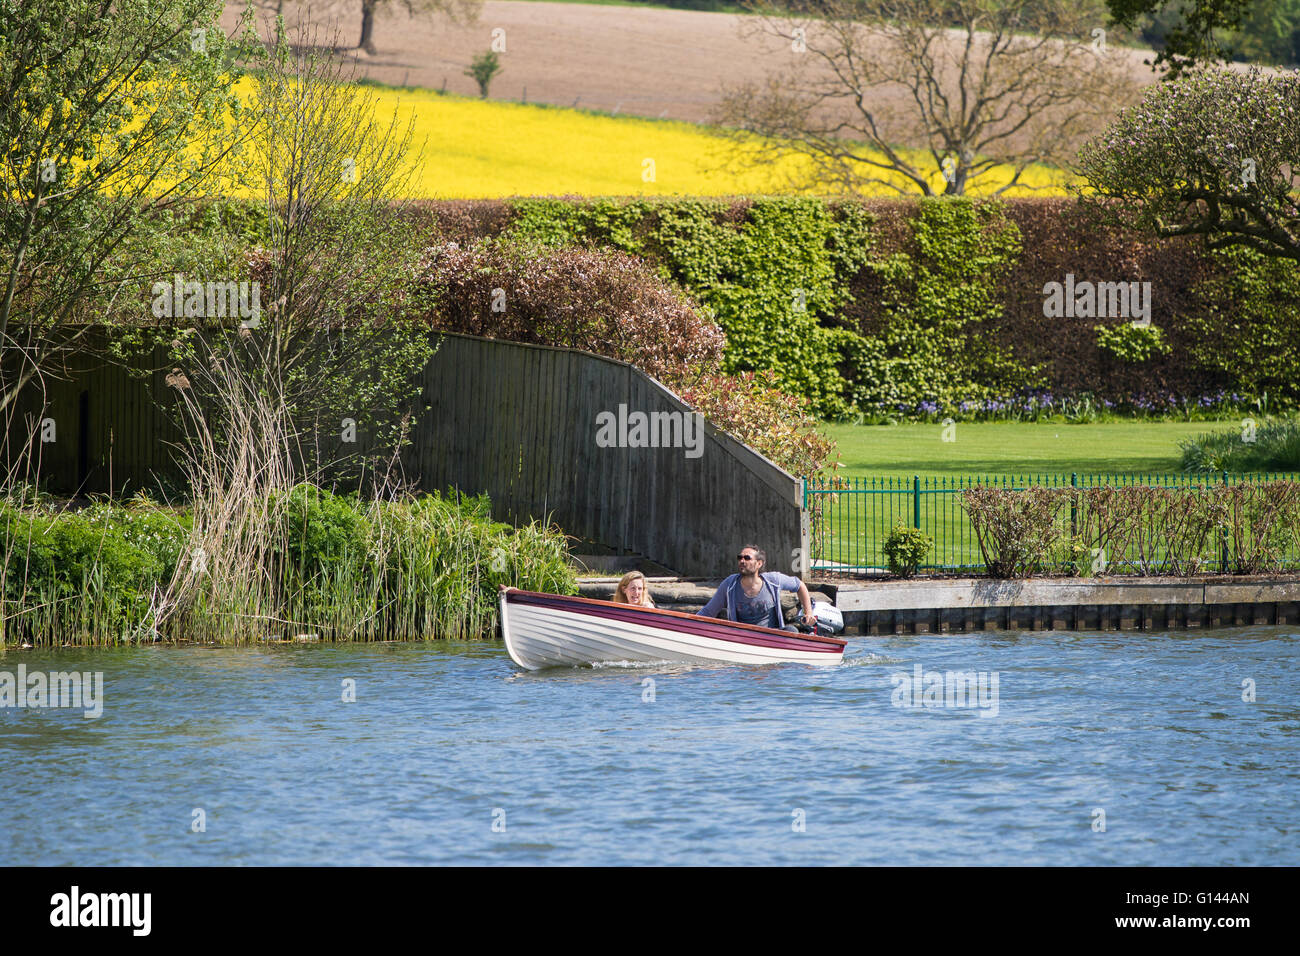 Hambleden Lock, Buckinghamshire, England, May 8th 2016. Actor, comedian and political activist Russell Brand is - Stock Image